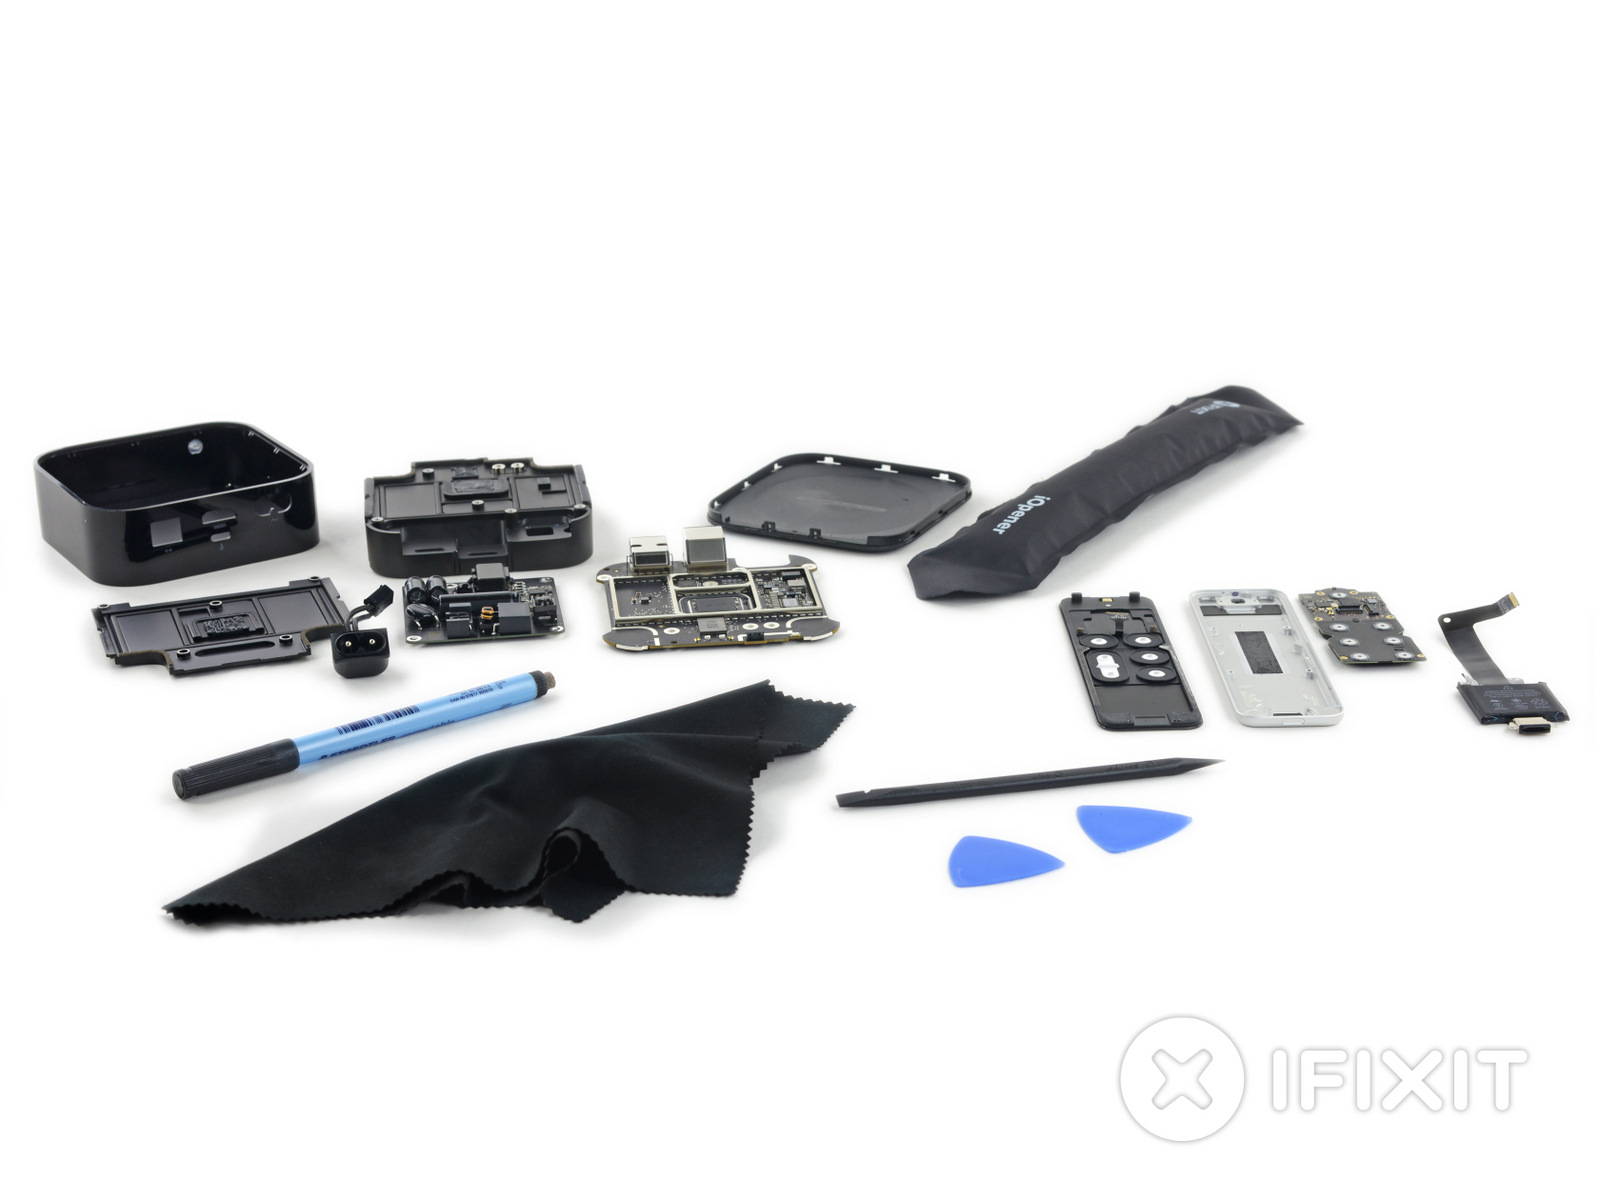 iFixit Pays the Price for Early Apple TV 4 Developer Unit Teardown